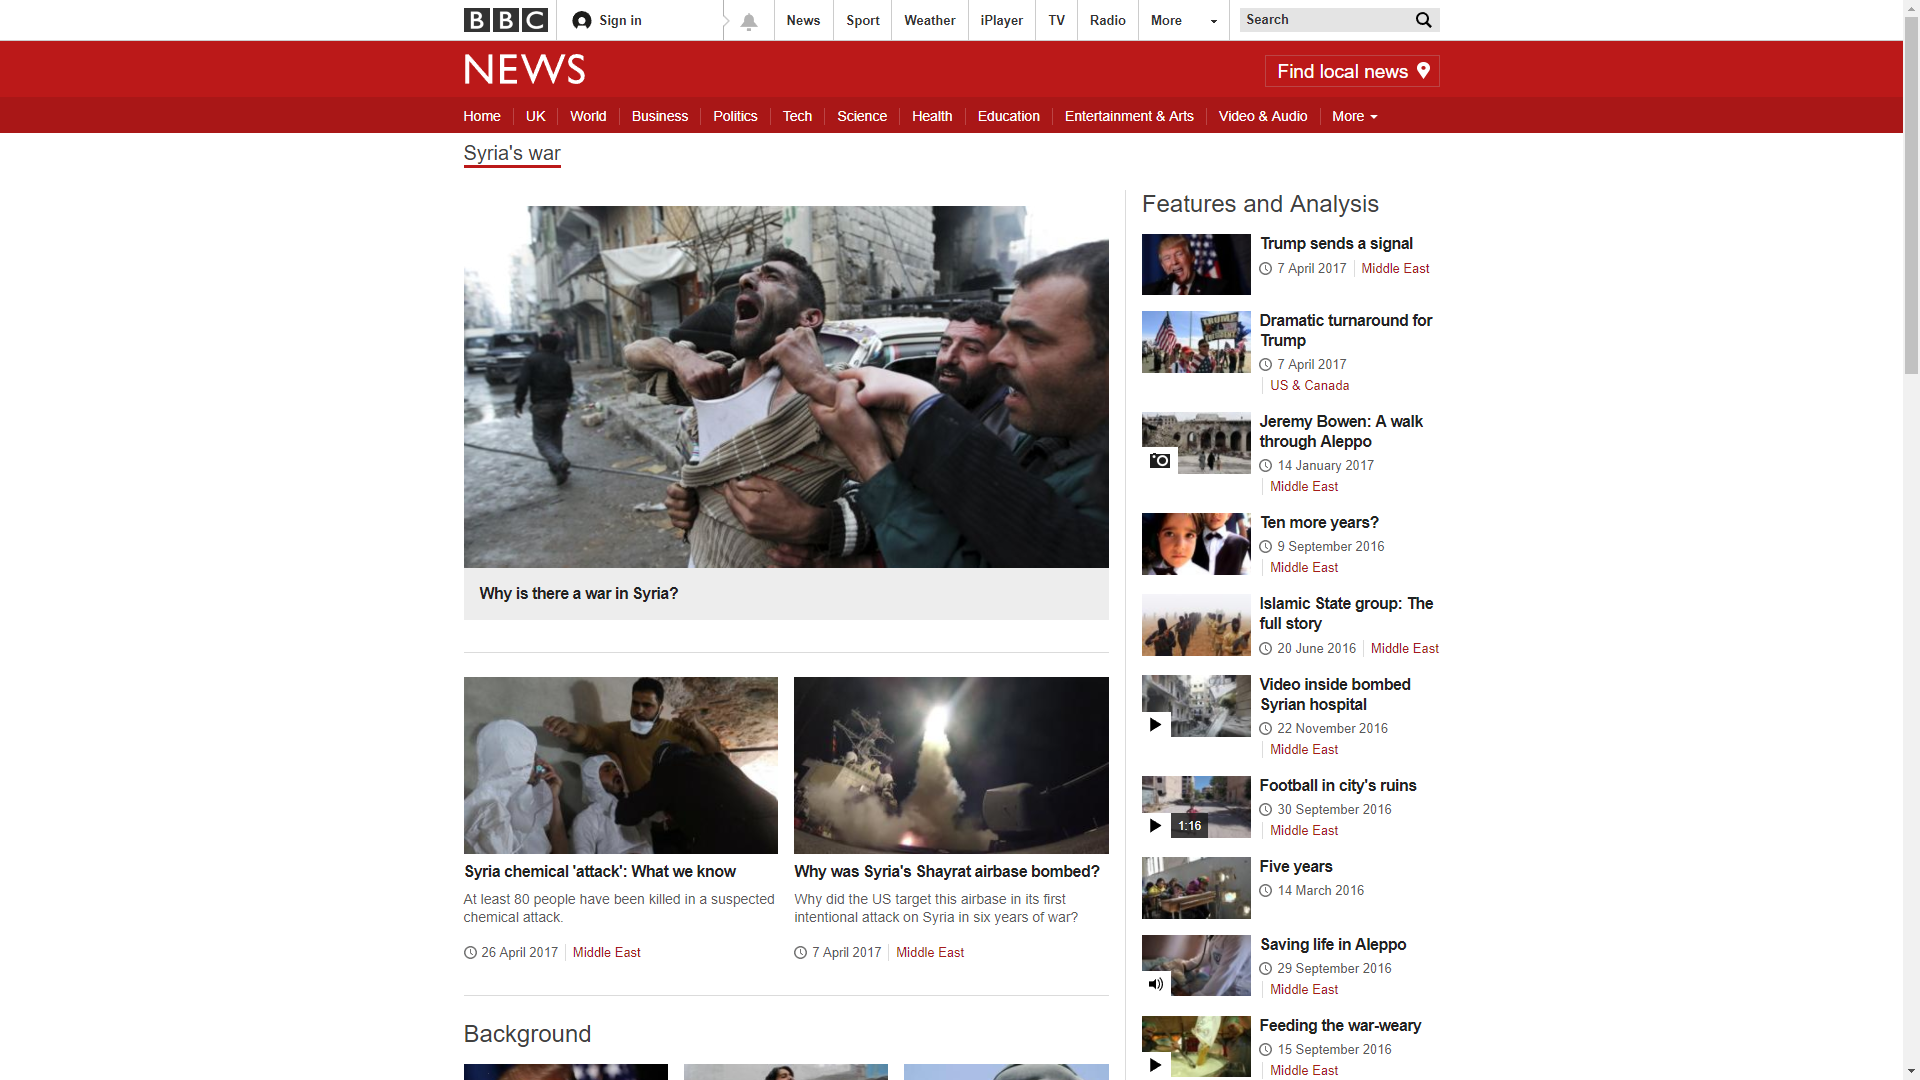 BBC Feature Page